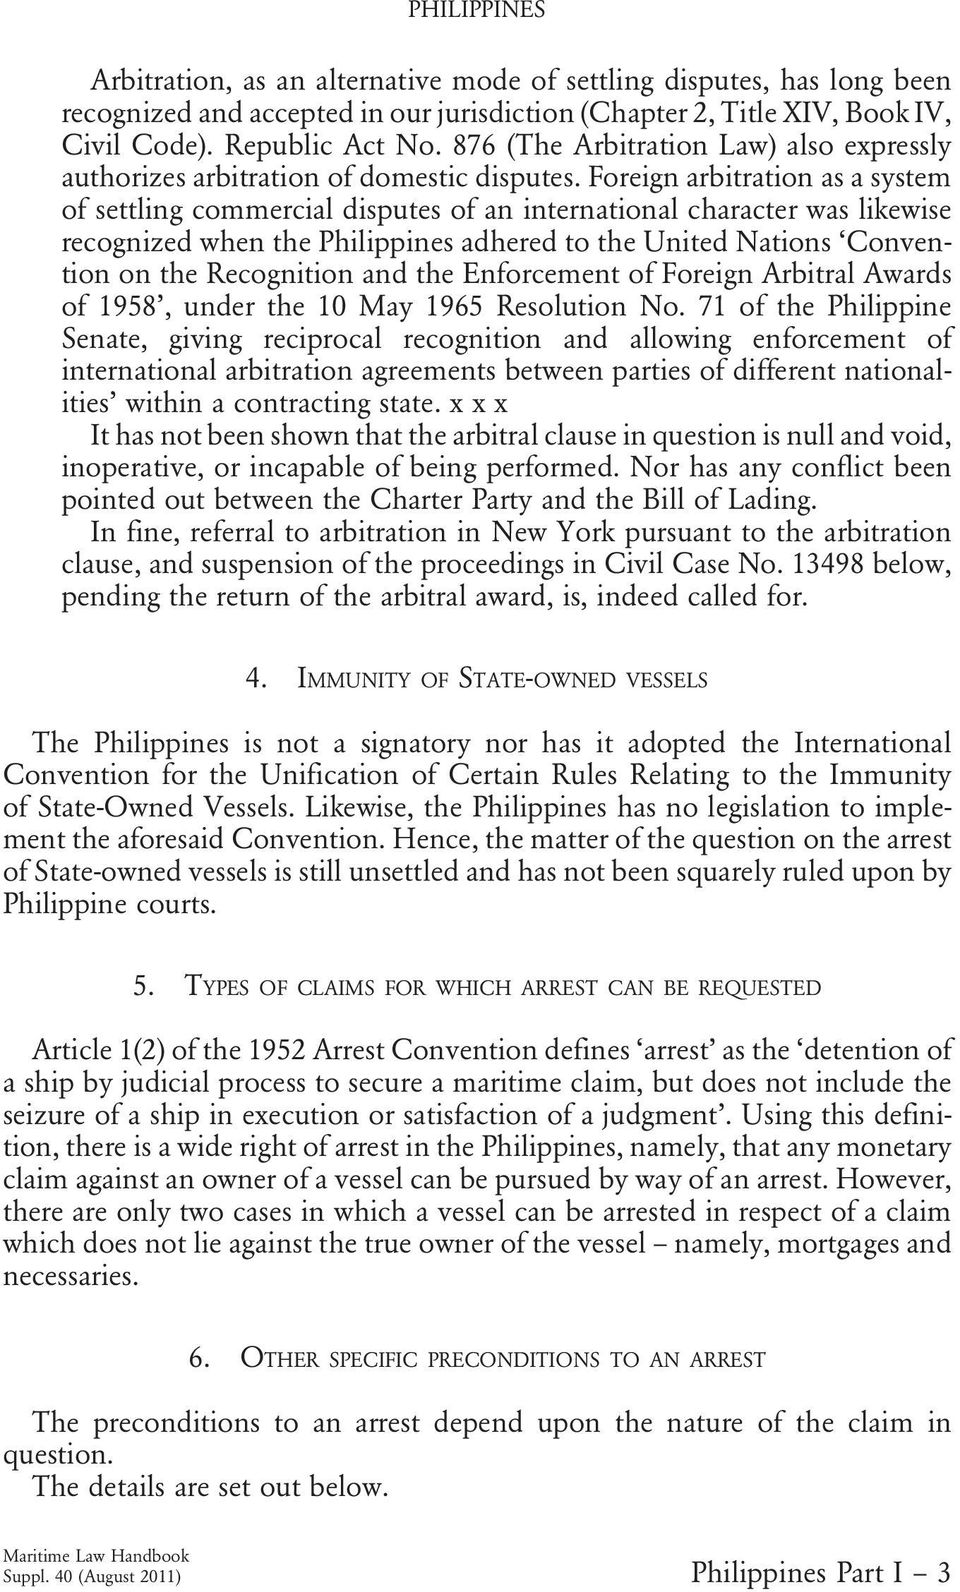 Foreign arbitration as a system of settling commercial disputes of an international character was likewise recognized when the Philippines adhered to the United Nations Convention on the Recognition